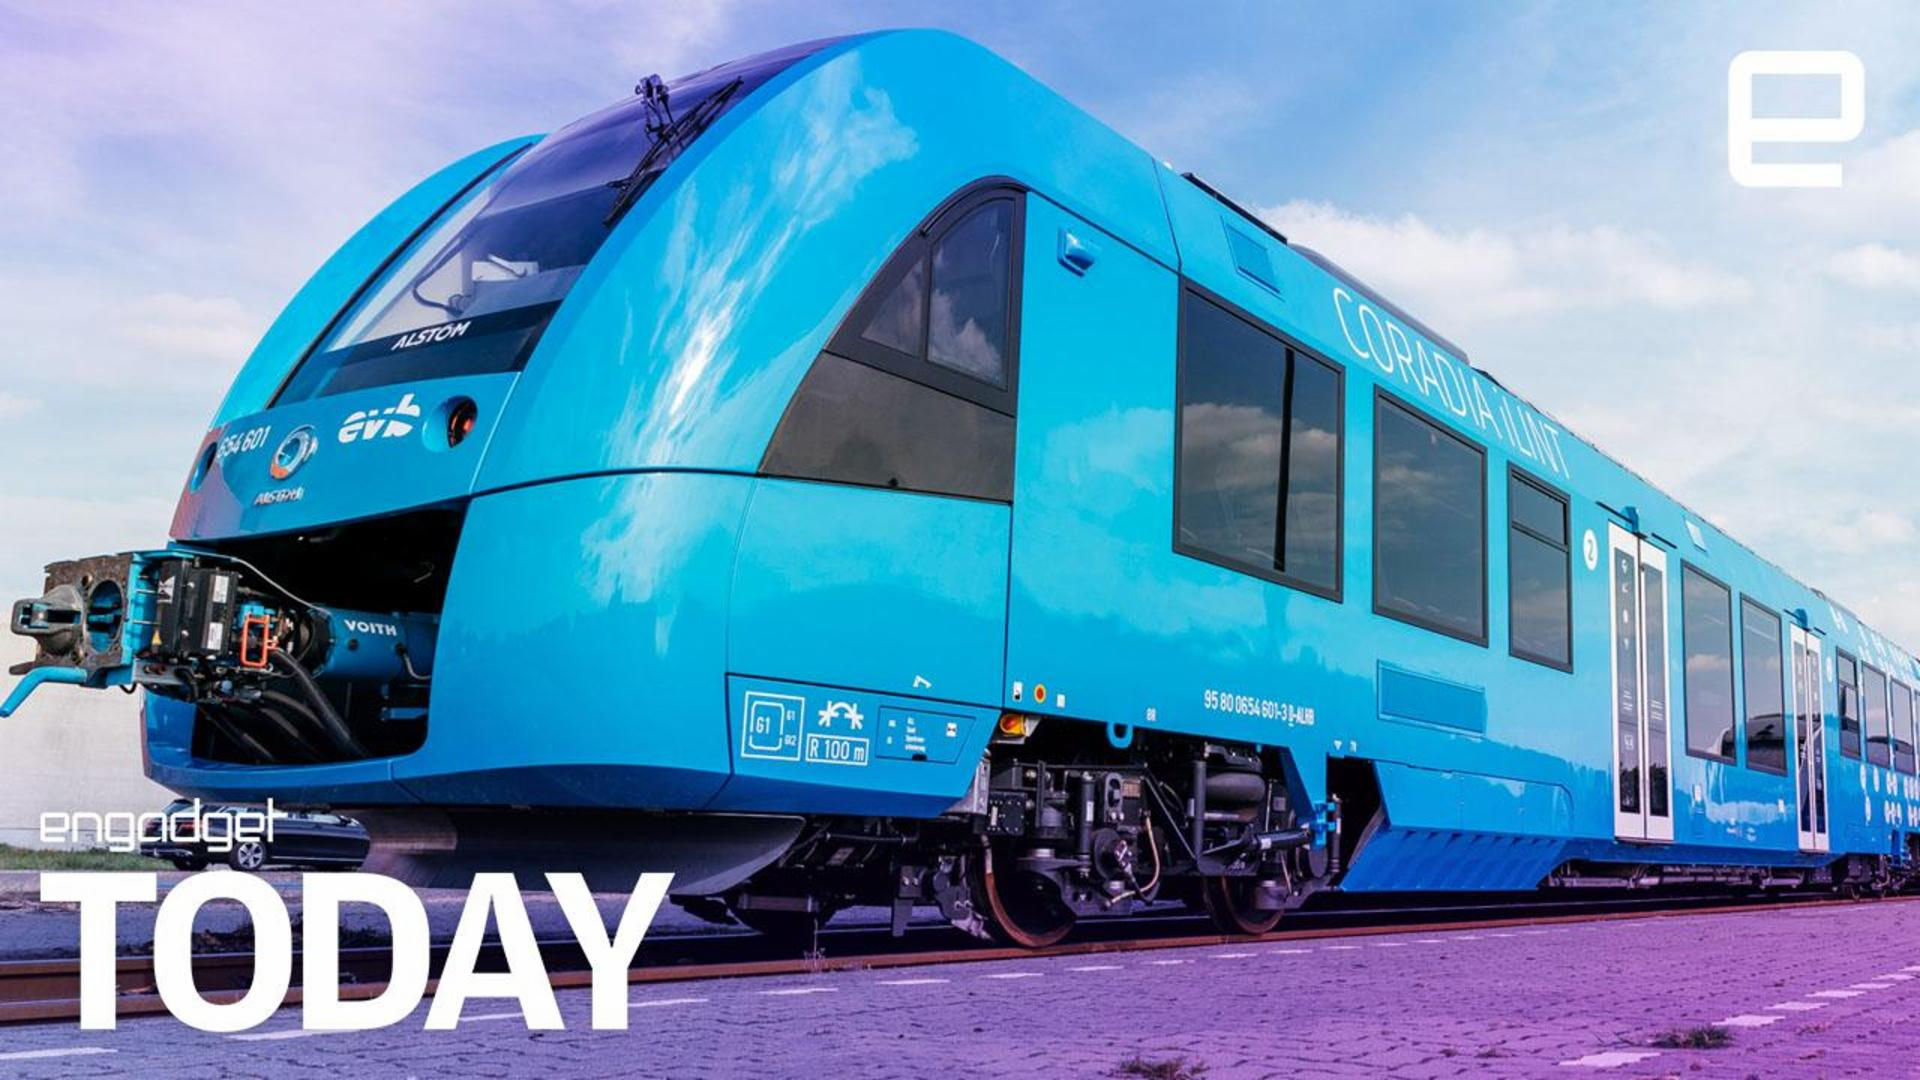 The world's first hydrogen train is now in service